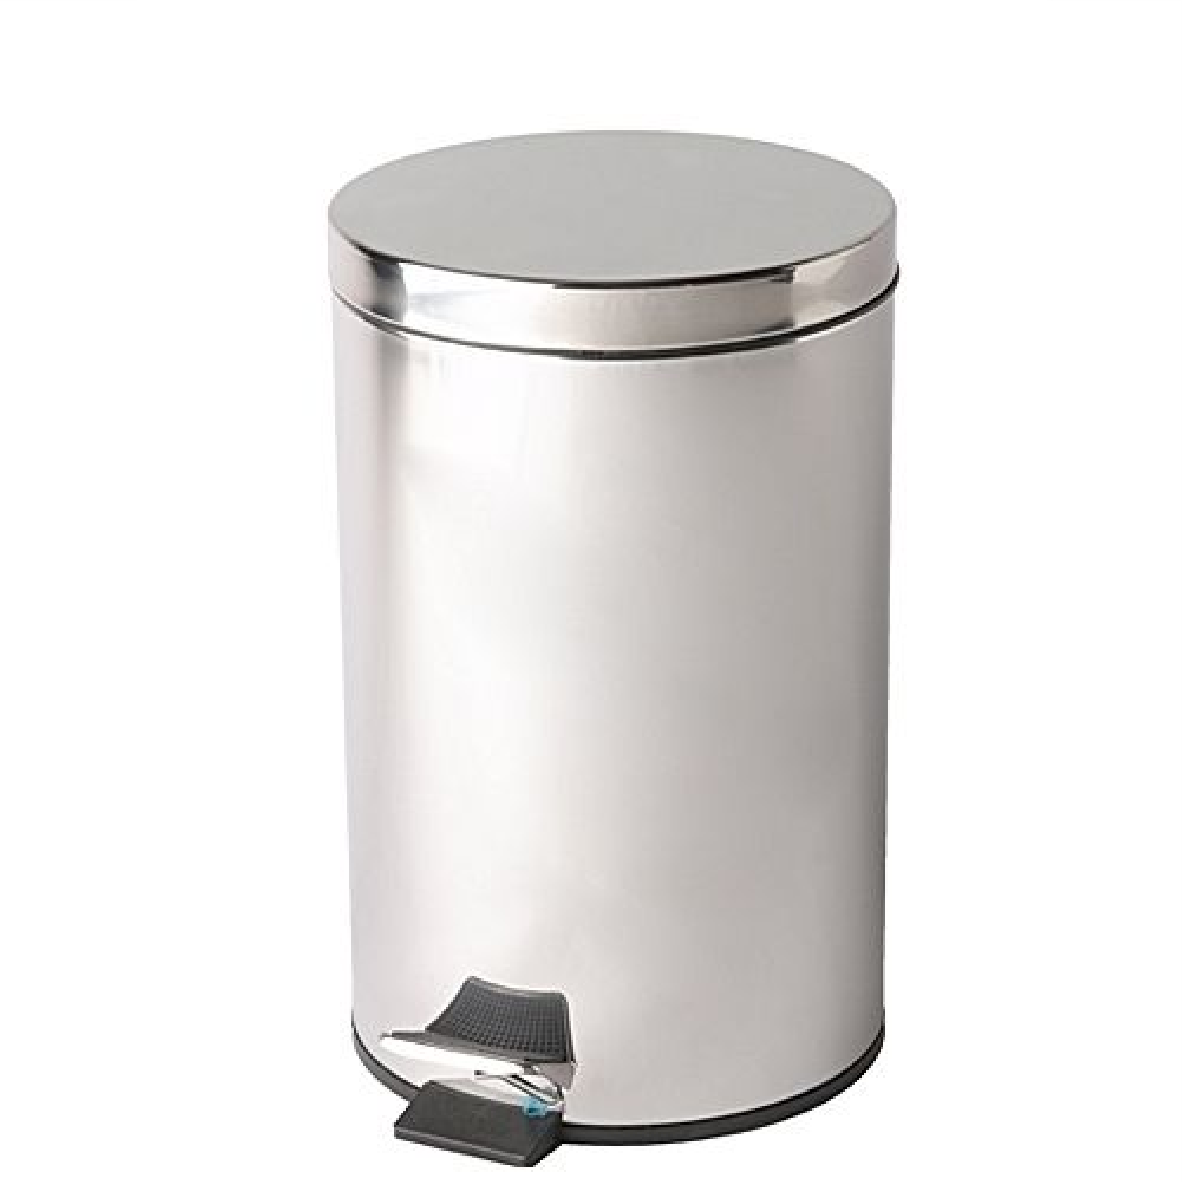 Brushed Stainless Steel Pedal bin 20ltr - product image